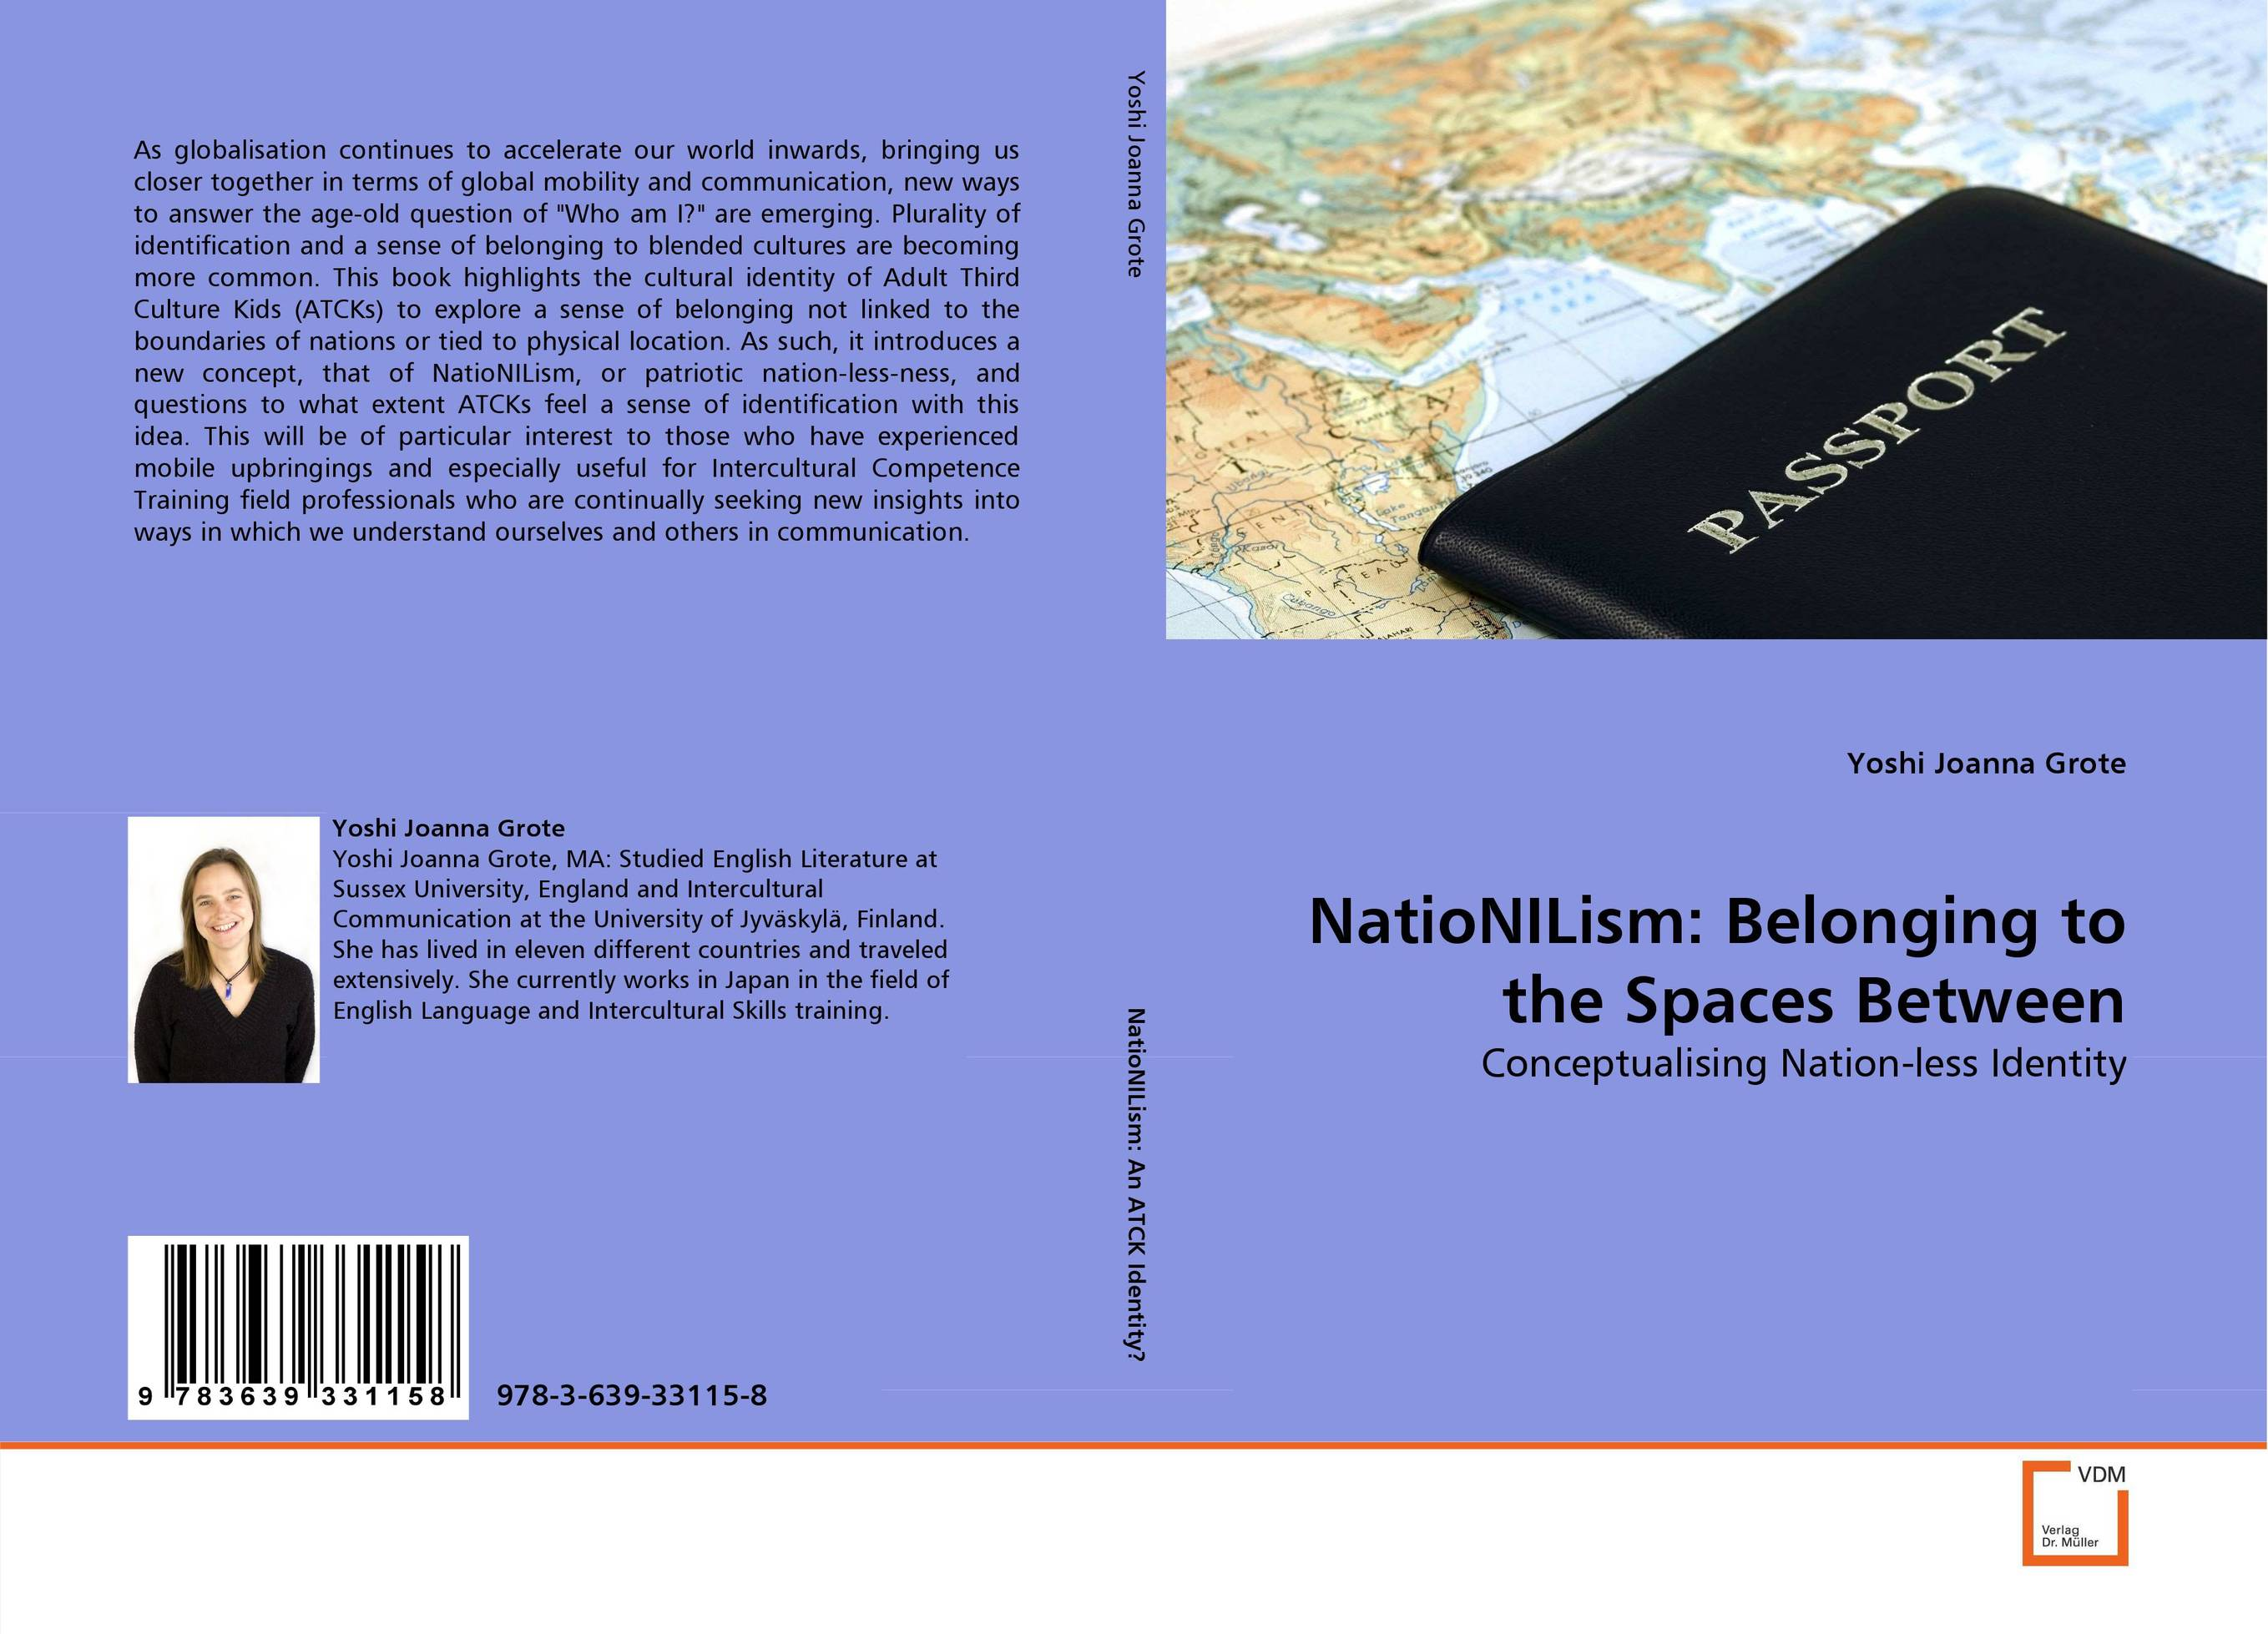 NatioNILism: Belonging to the Spaces Between sense and sensibility